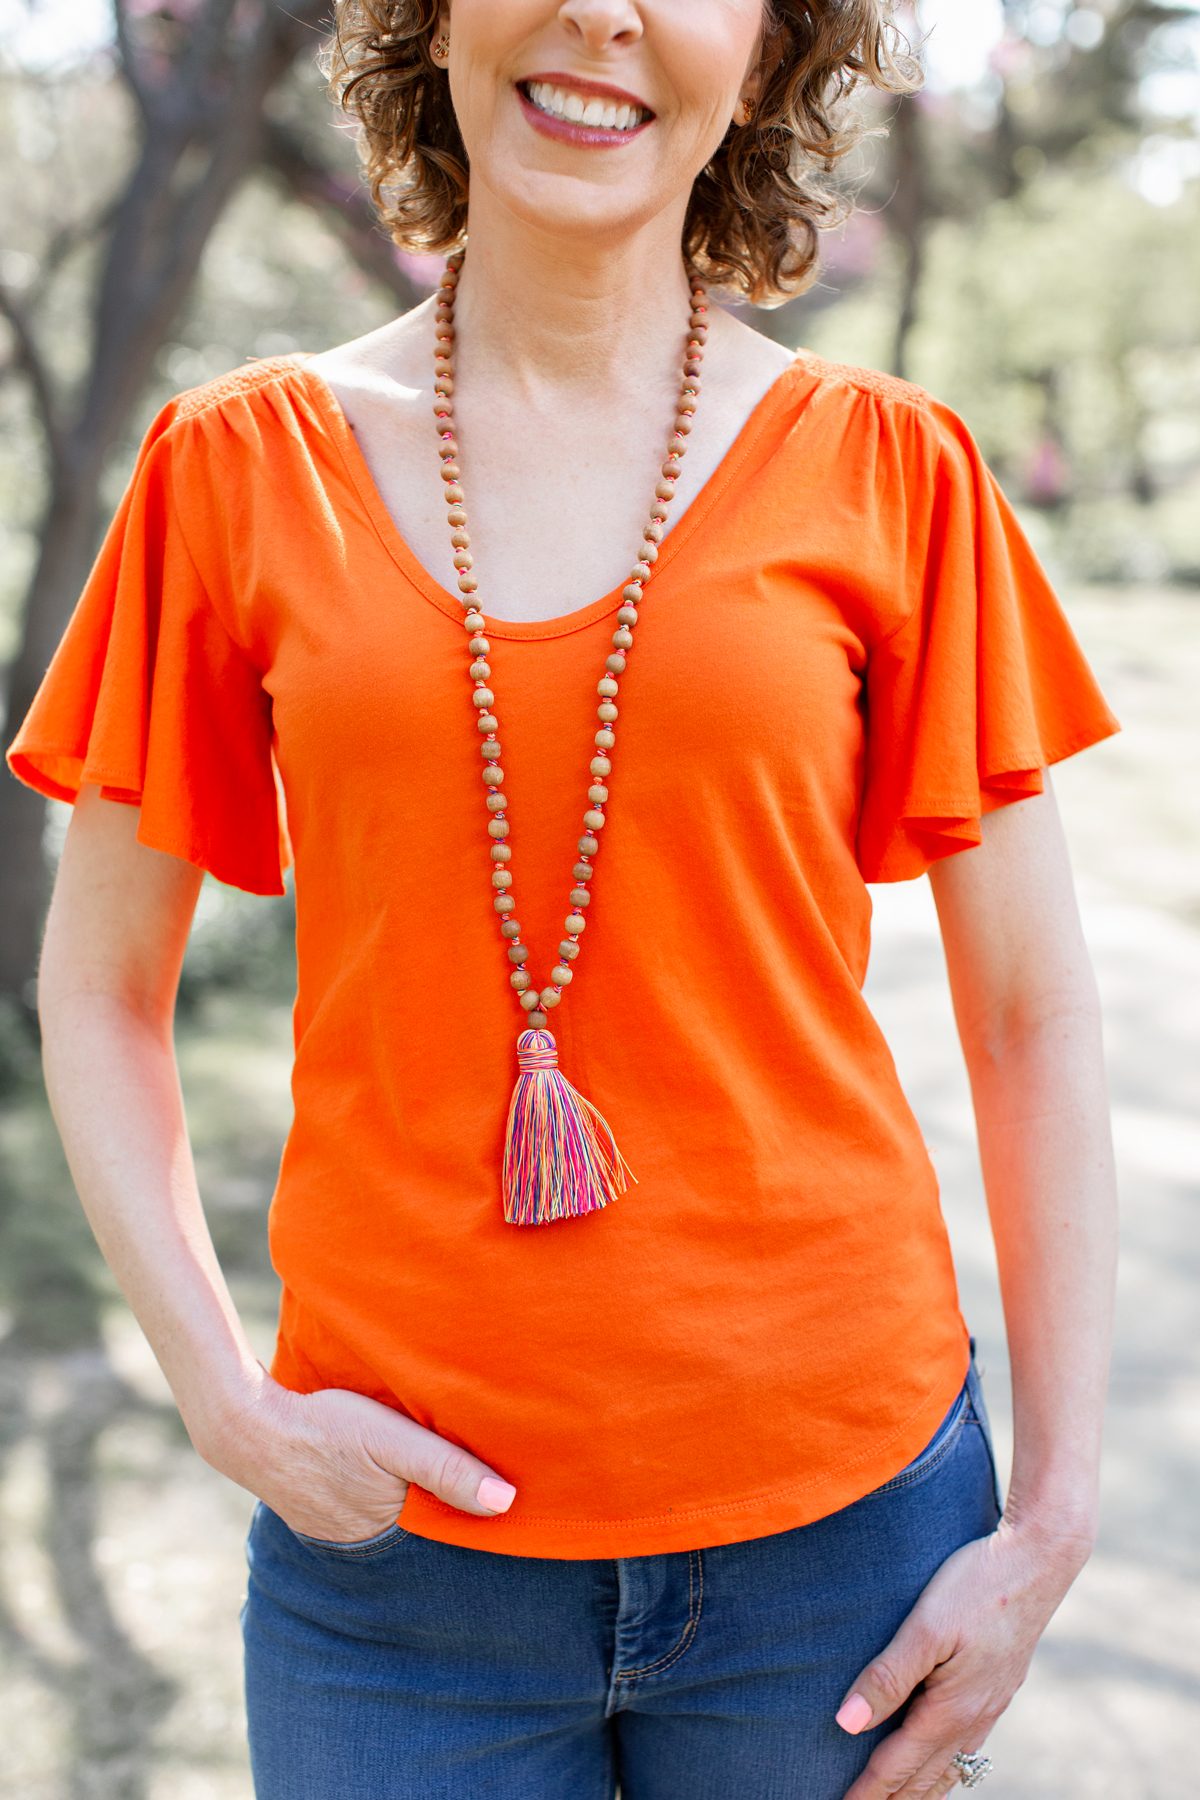 woman in orange shirt and tassel necklace in park